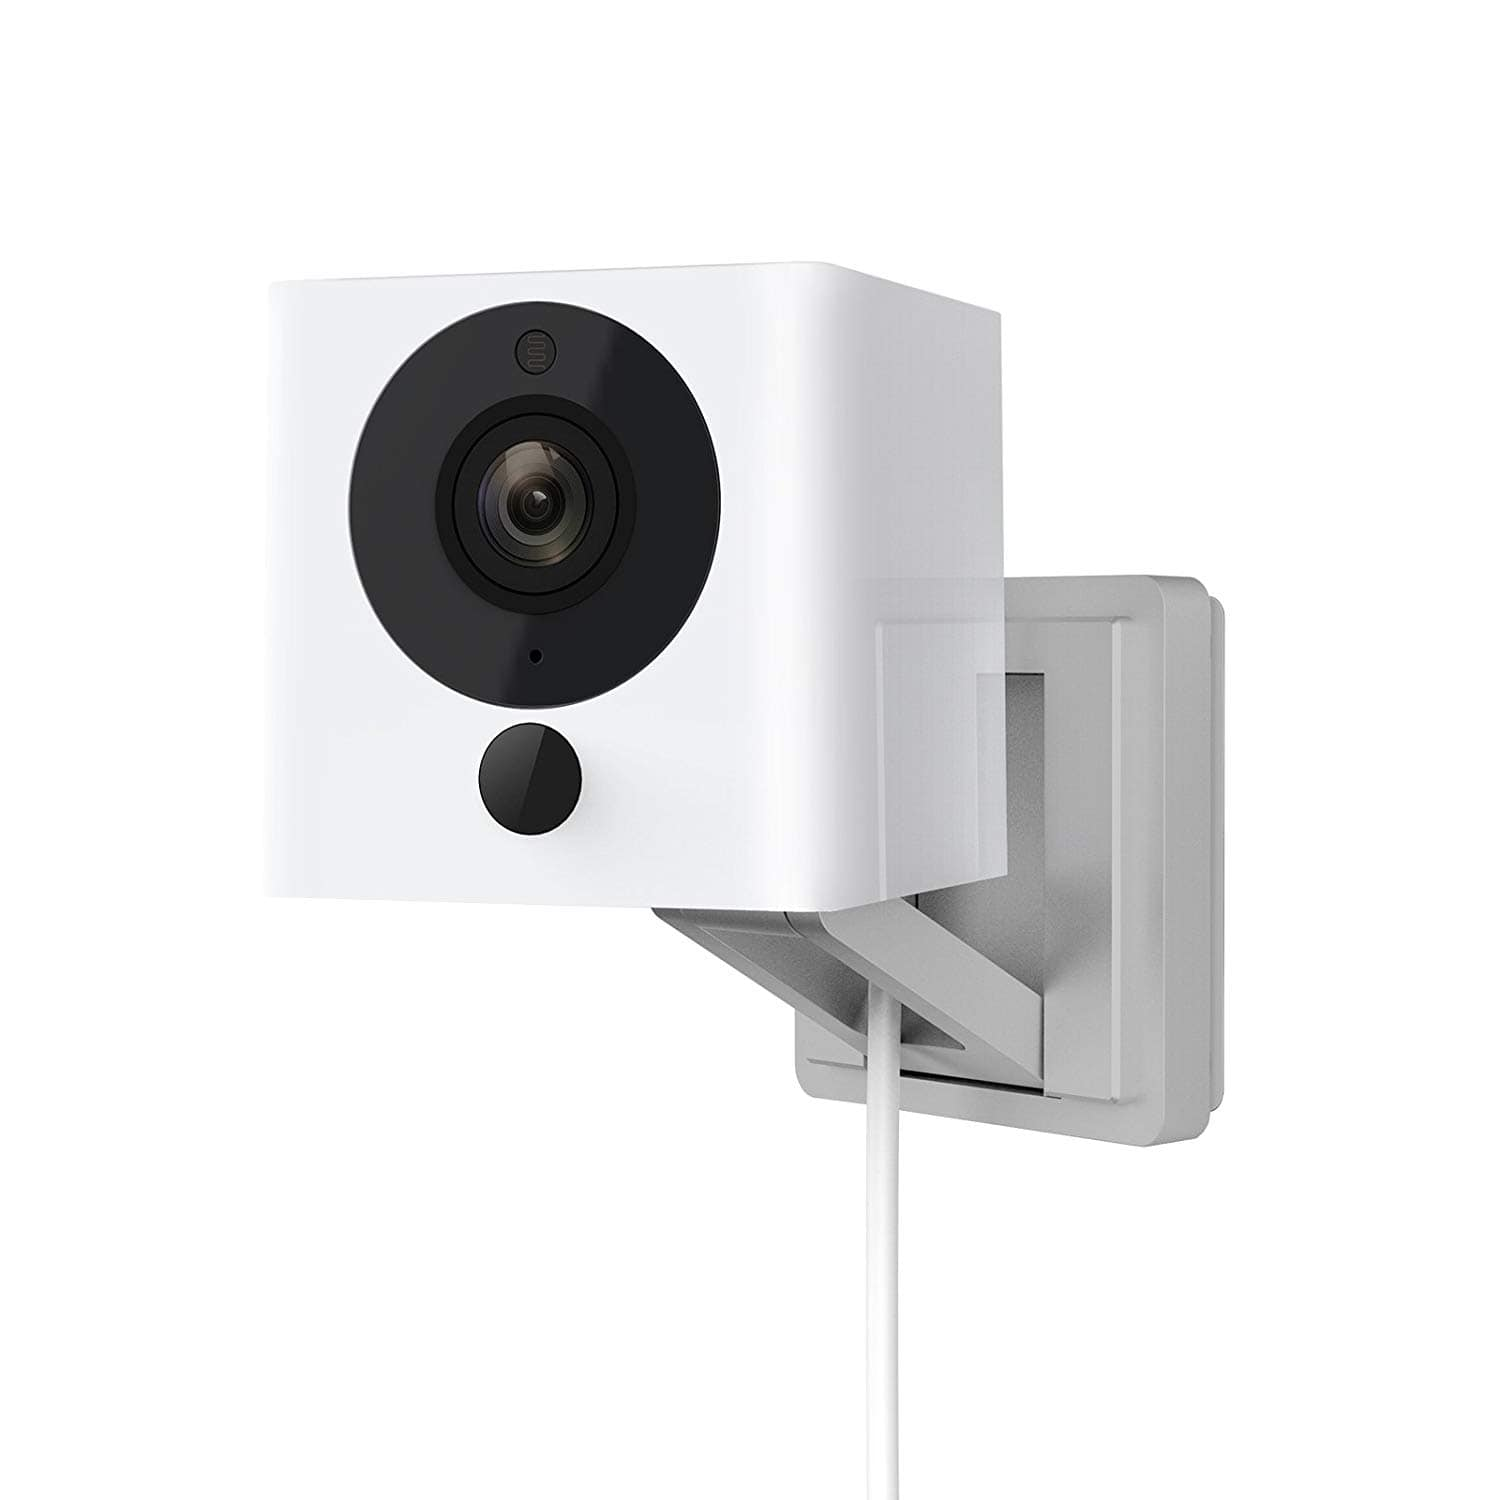 Wyze cam v2 at amazon.com for $20.48 with 20% coupon YMMV